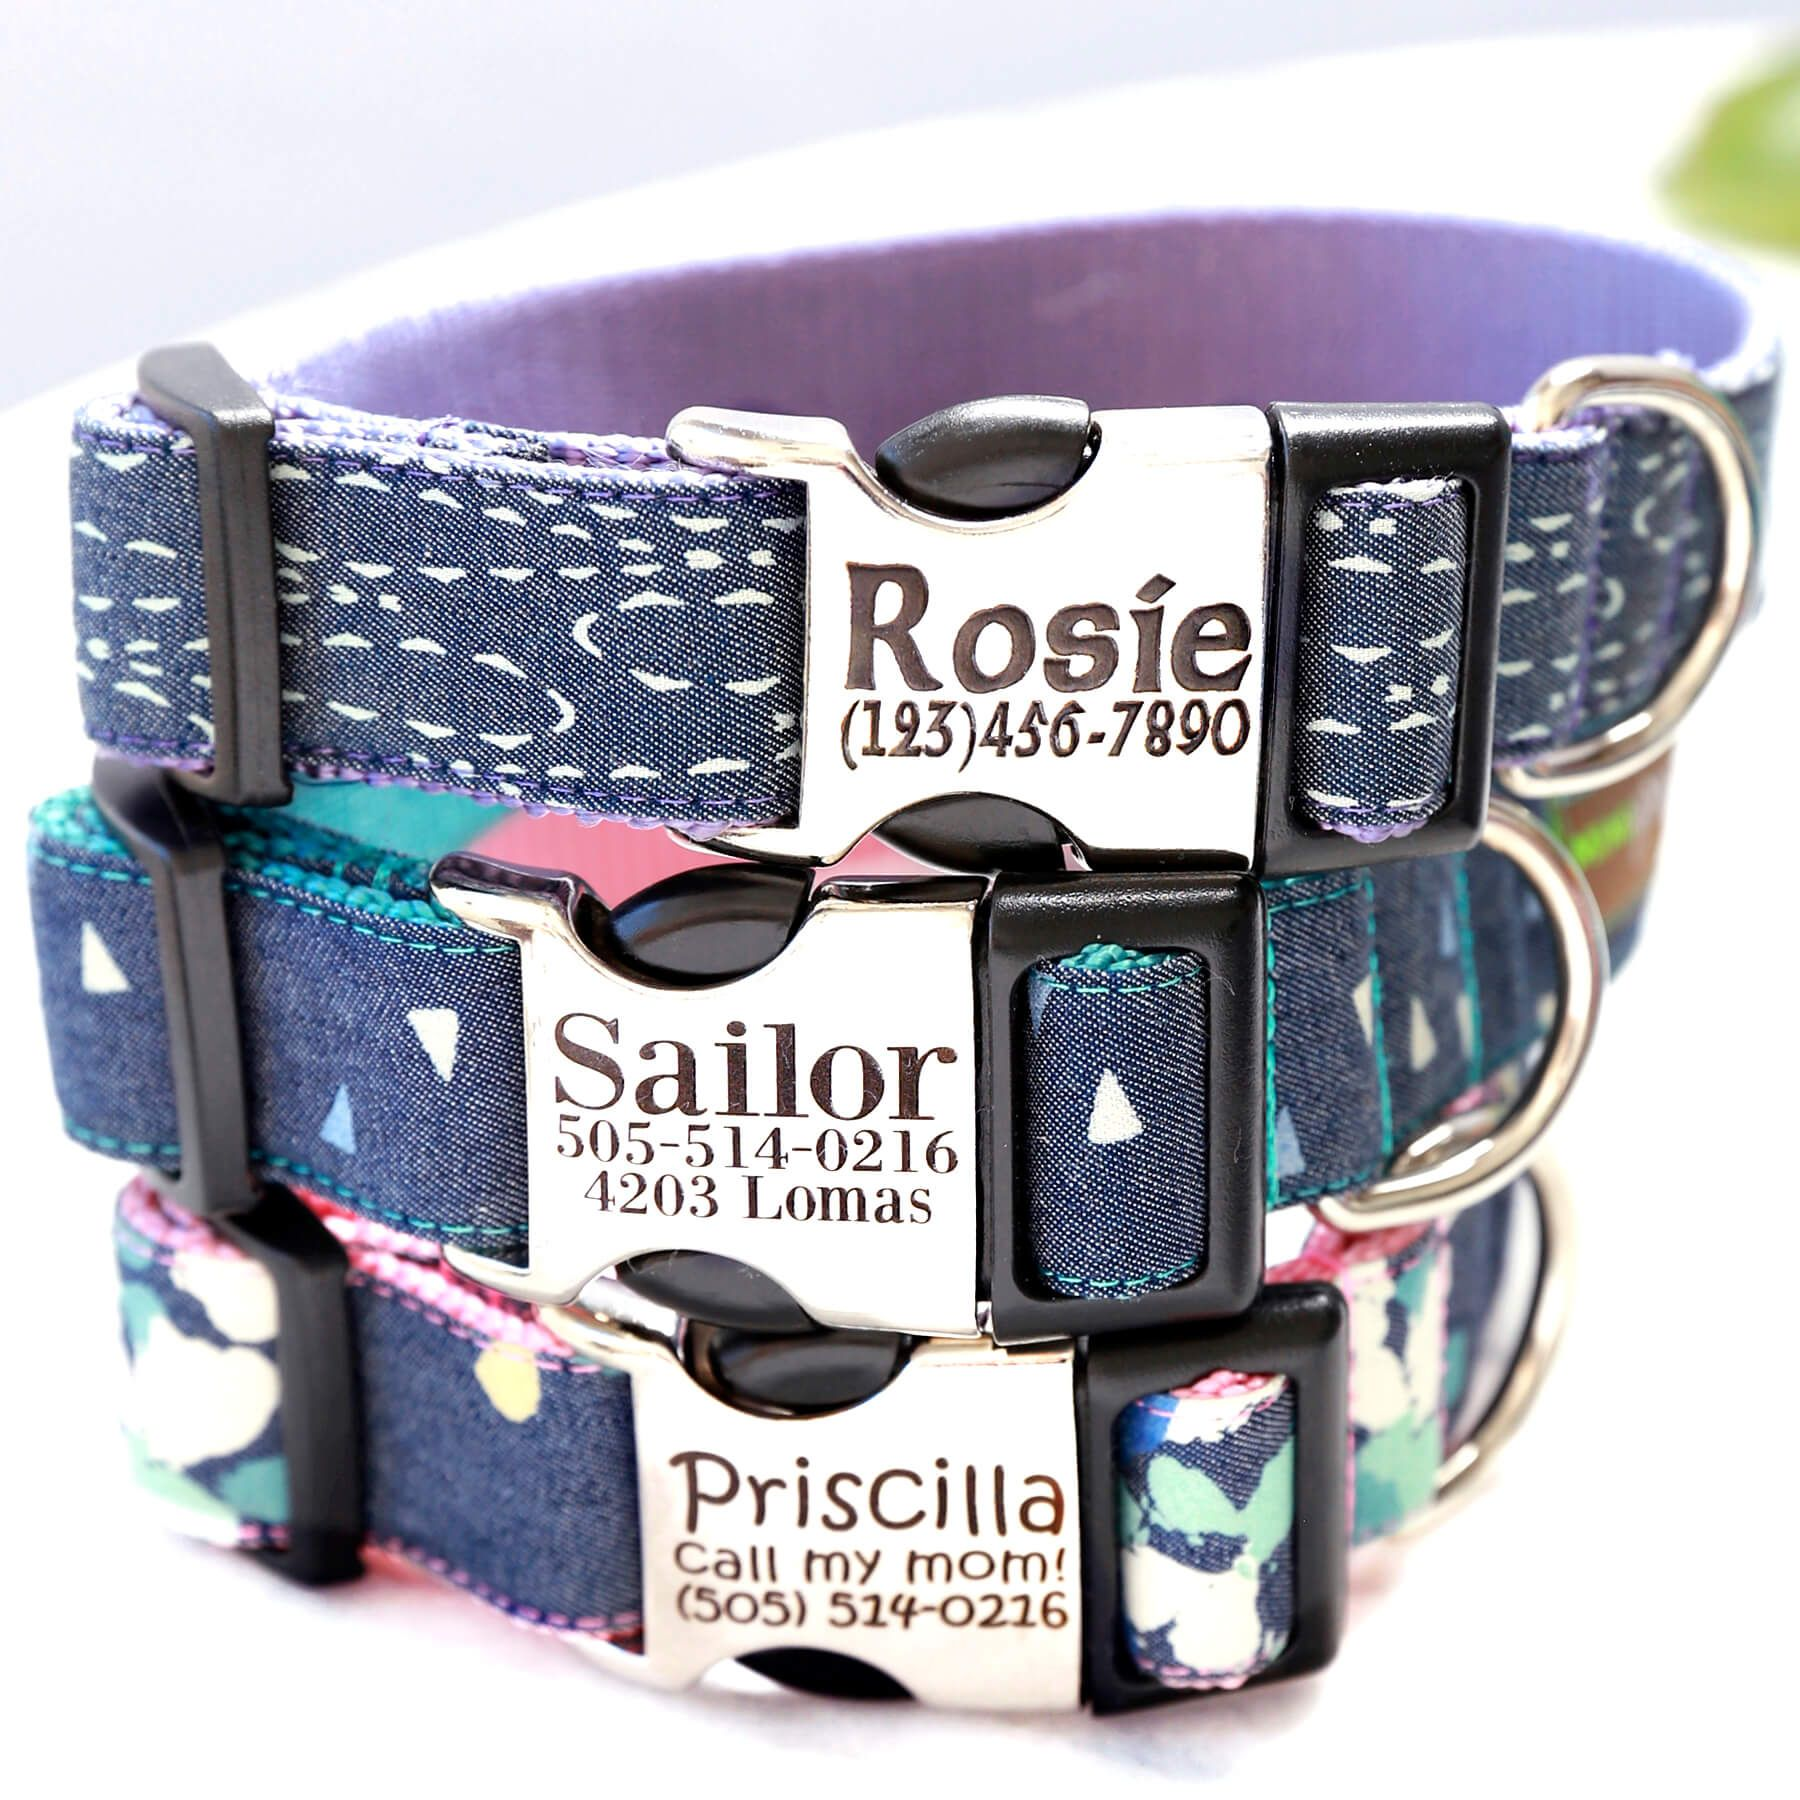 2f9f5530fd42 Denim is always in style. Our personalized denim dog collar is customized  with your choice of webbing color & your dog's most important info engraved  on the ...